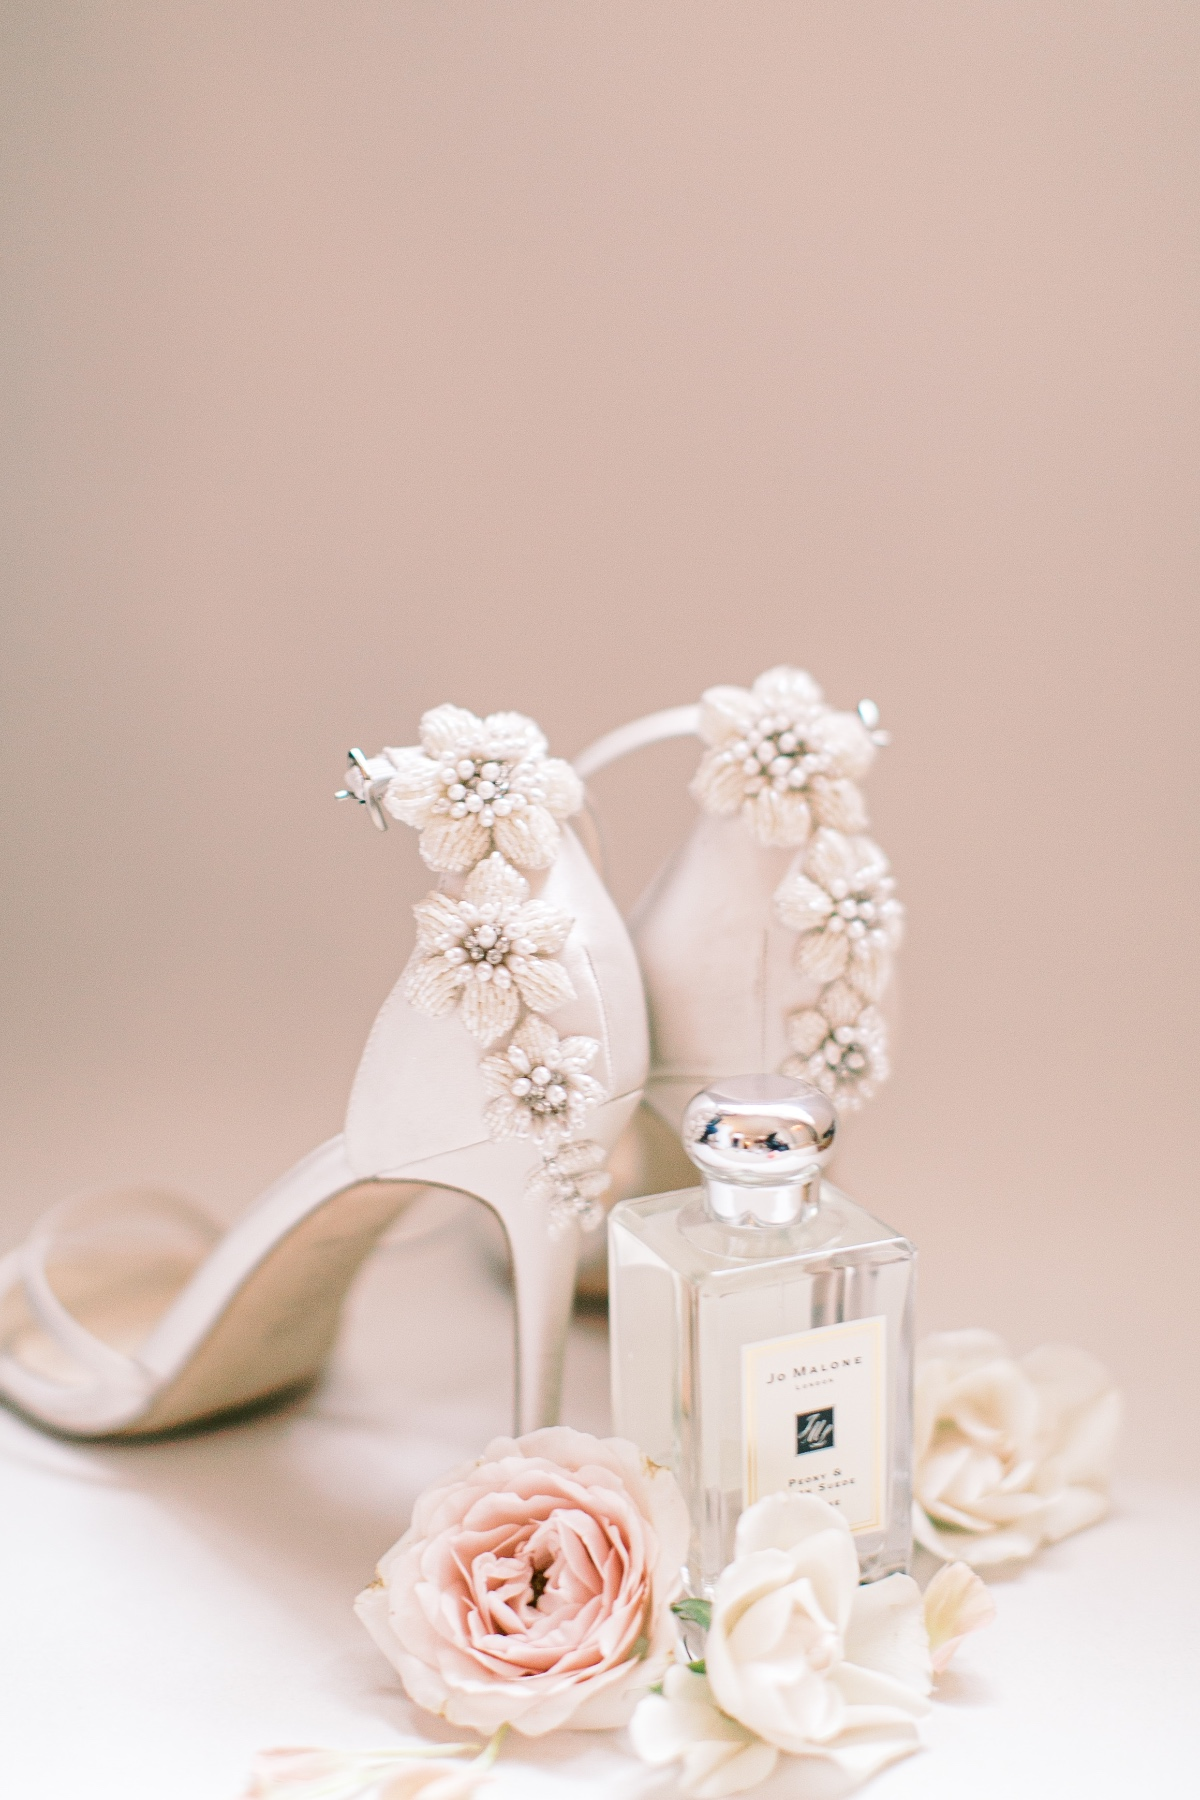 The Best Floral Perfume For Your Bridal Style